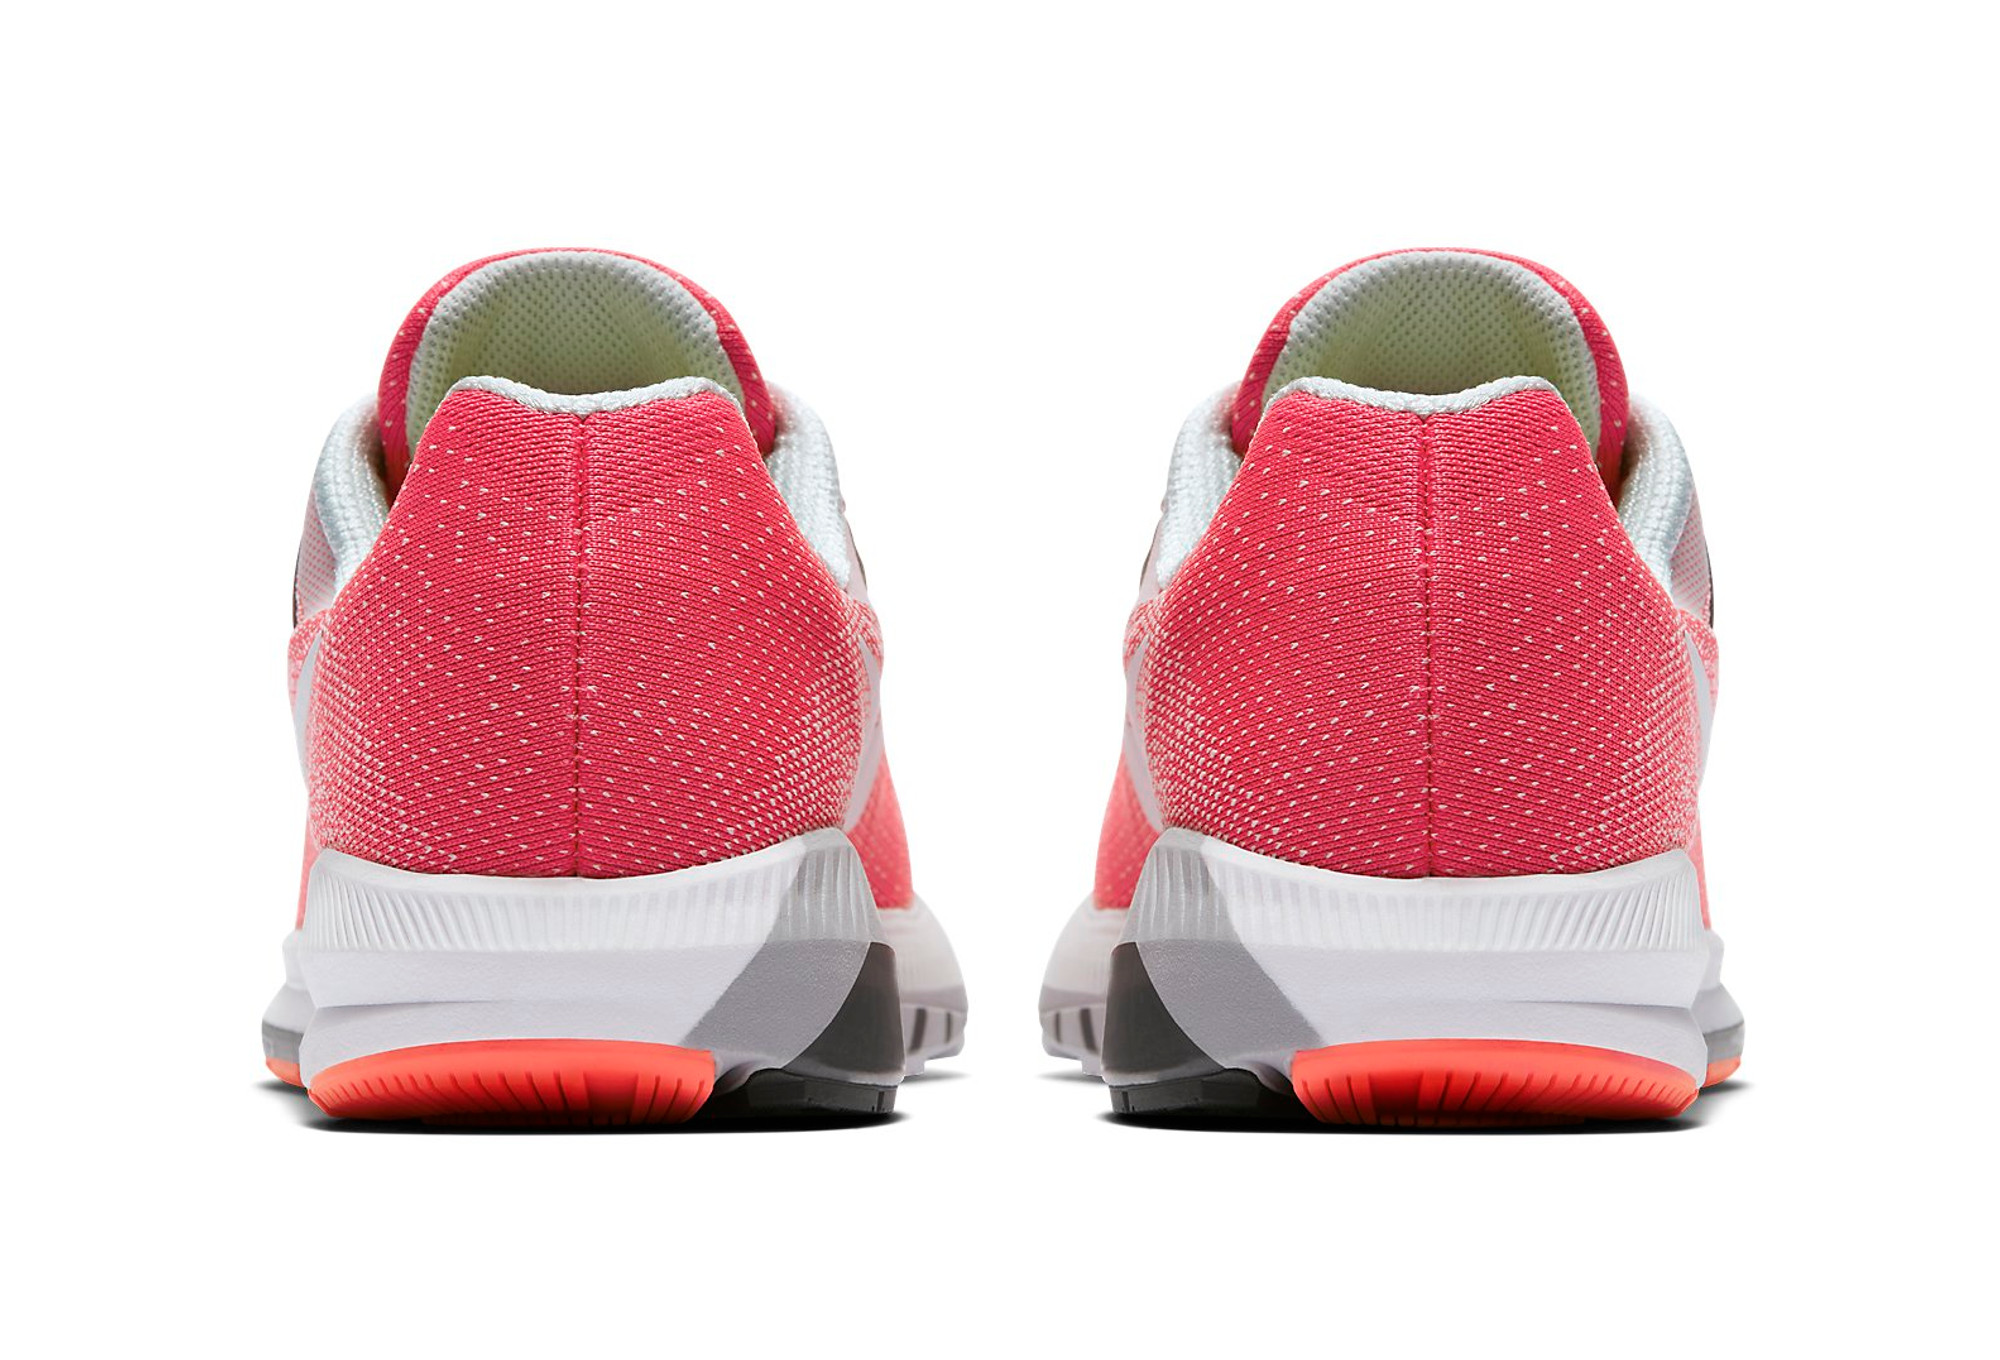 save off 67d75 d4142 NIKE AIR ZOOM STRUCTURE 20 Pink White Women